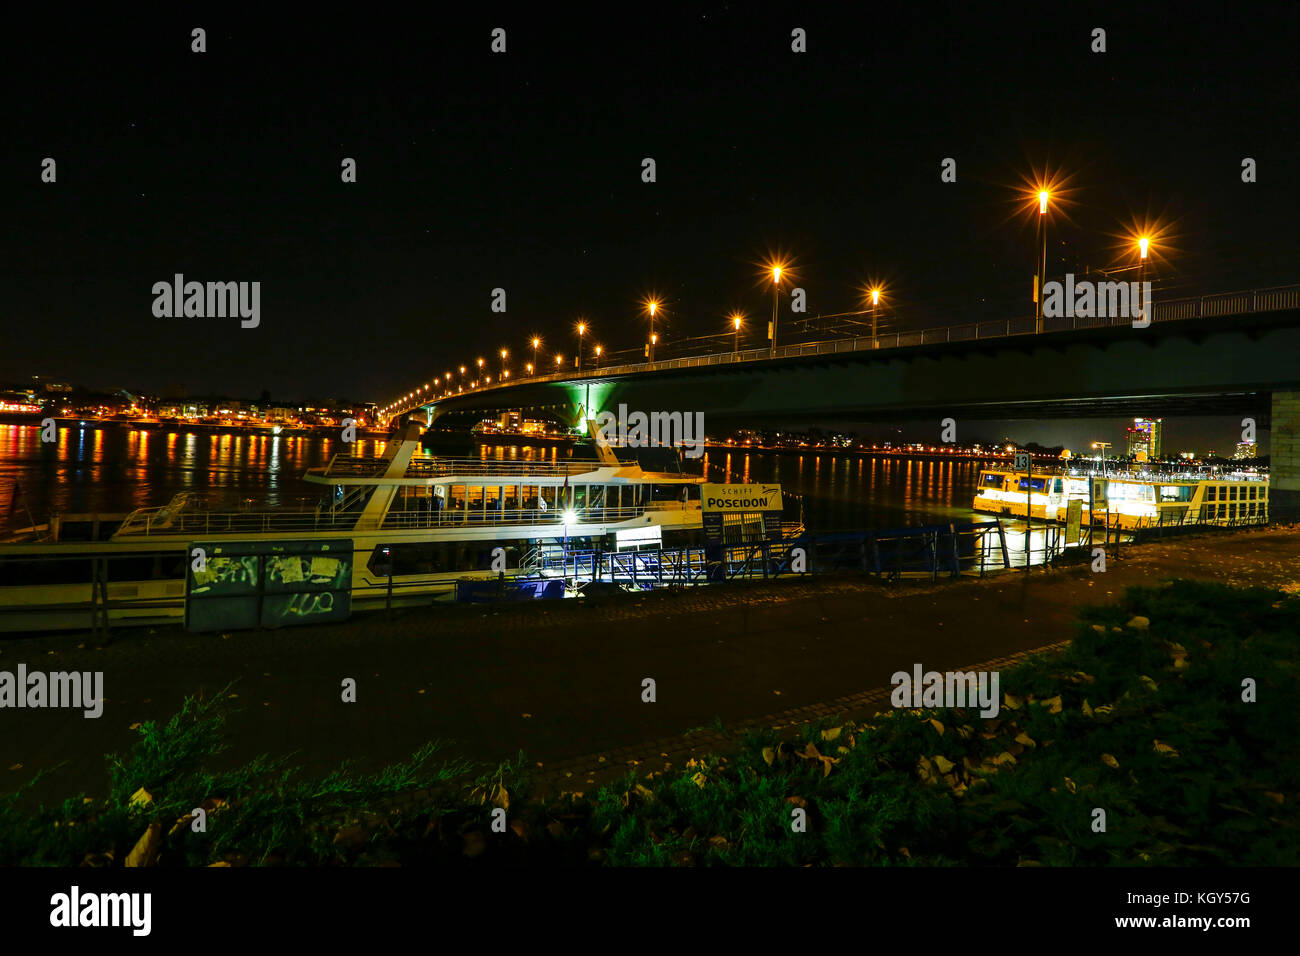 Night view of the Rhein River at Bonn in Germany. Stock Photo